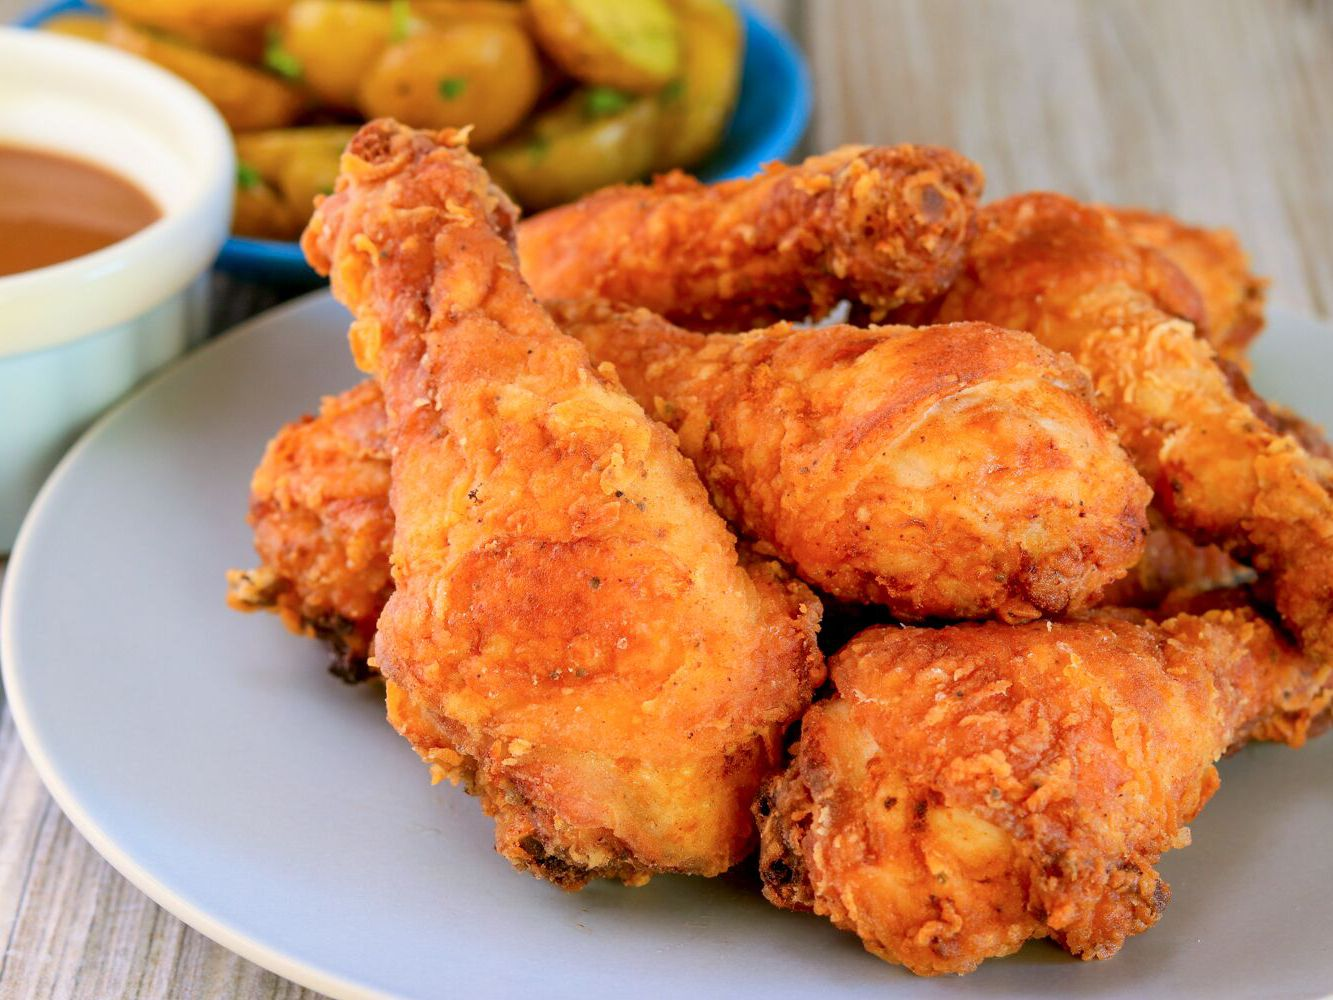 Crispy Fried Chicken Drumsticks Recipe